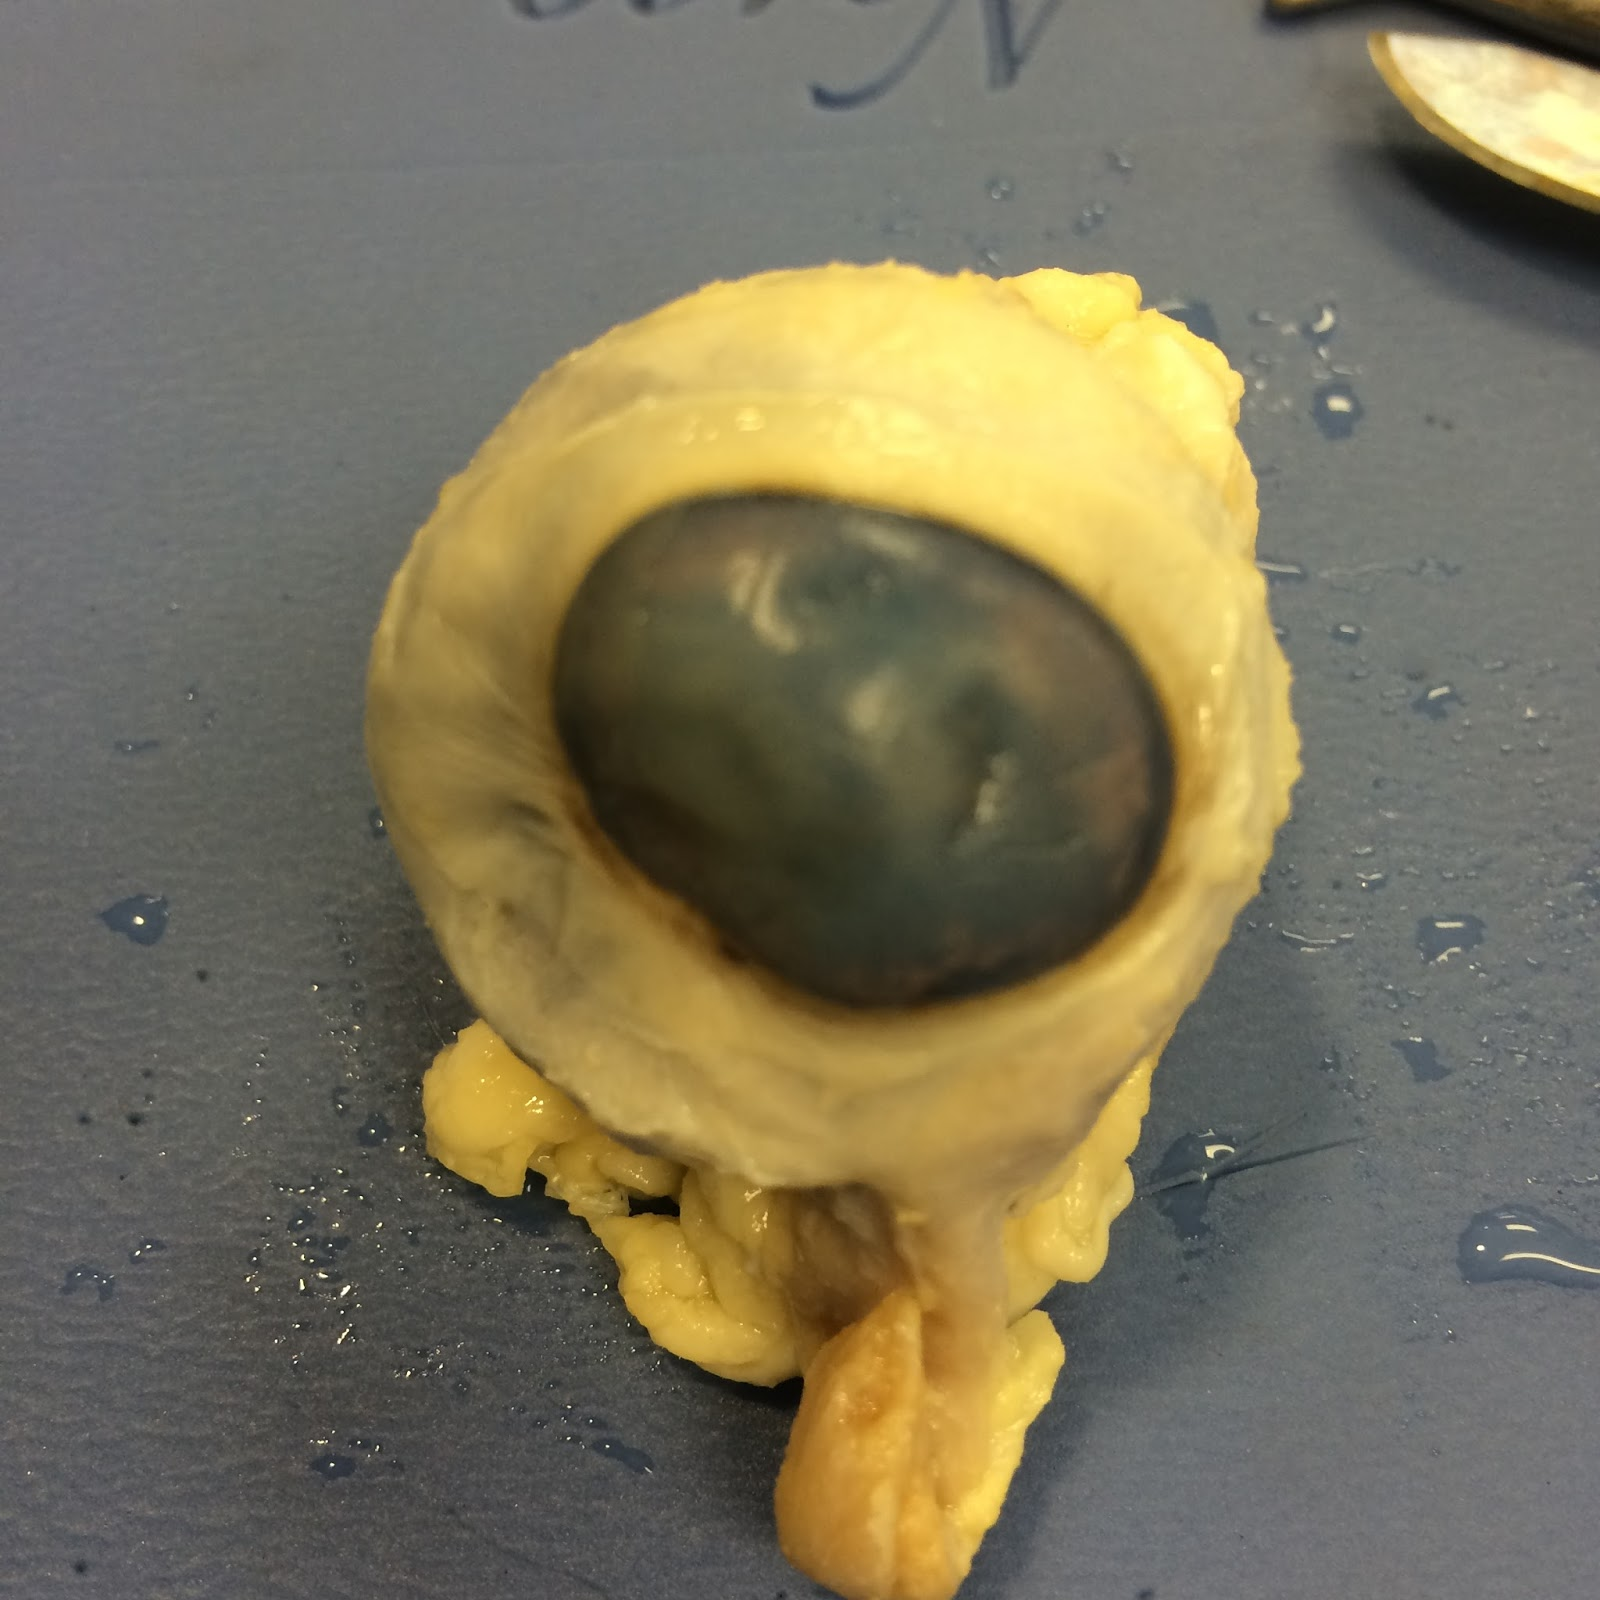 Sheep Eye Dissection